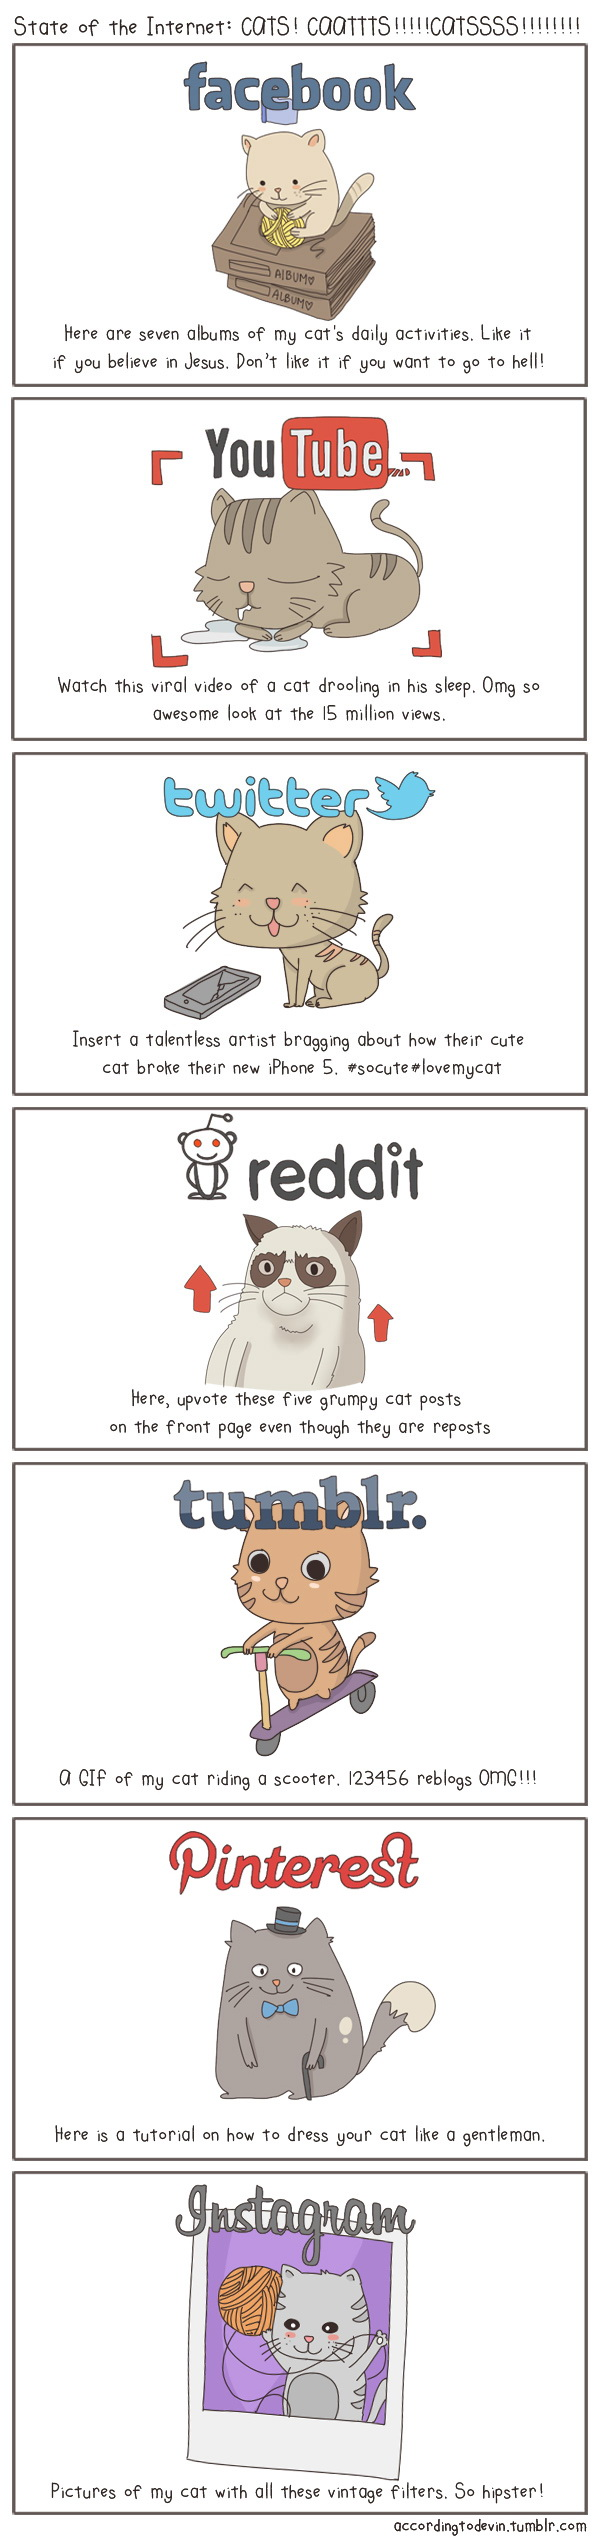 If Social Media Platforms Were Cats...[INFOGRAPHIC]